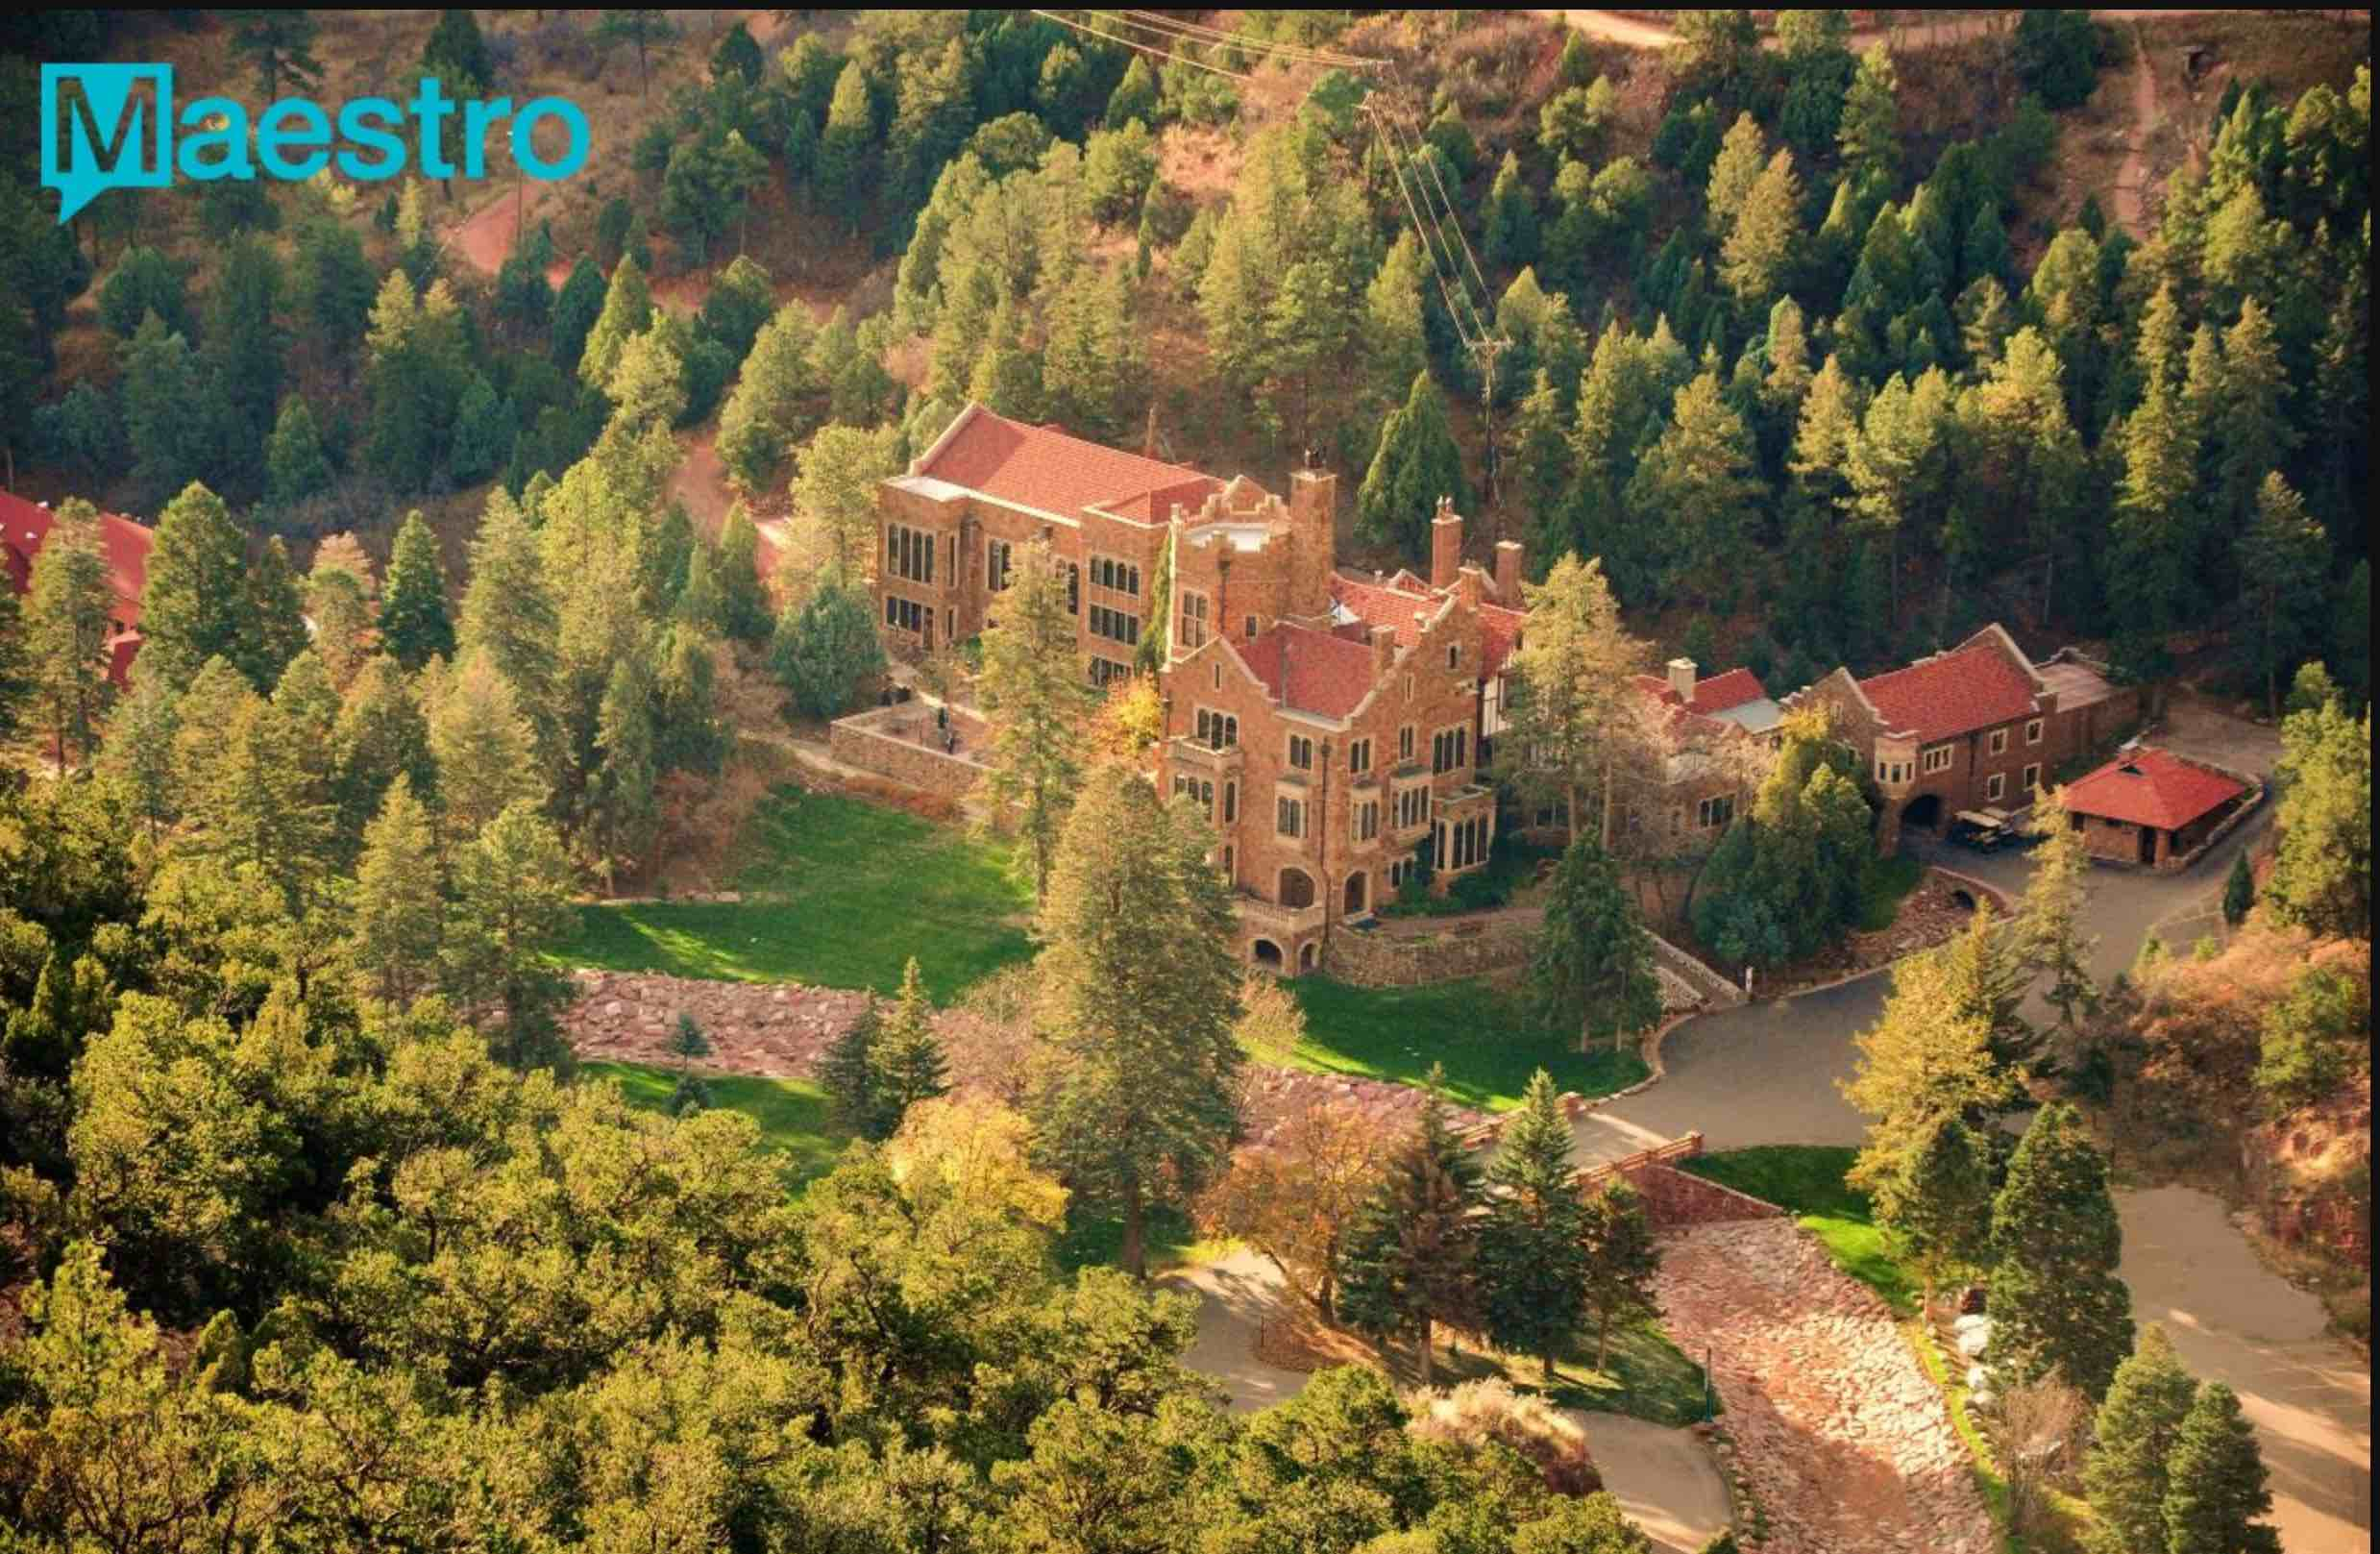 maestro image left 2 - California's Handlery Hotels Leverages Maestro's Multi-Property Centralized PMS to Track Guest Preferences and Manage Loyalty Program - Innovative Property Management Software Solutions Powering Hotels, Resorts & Multi‑Property Groups.